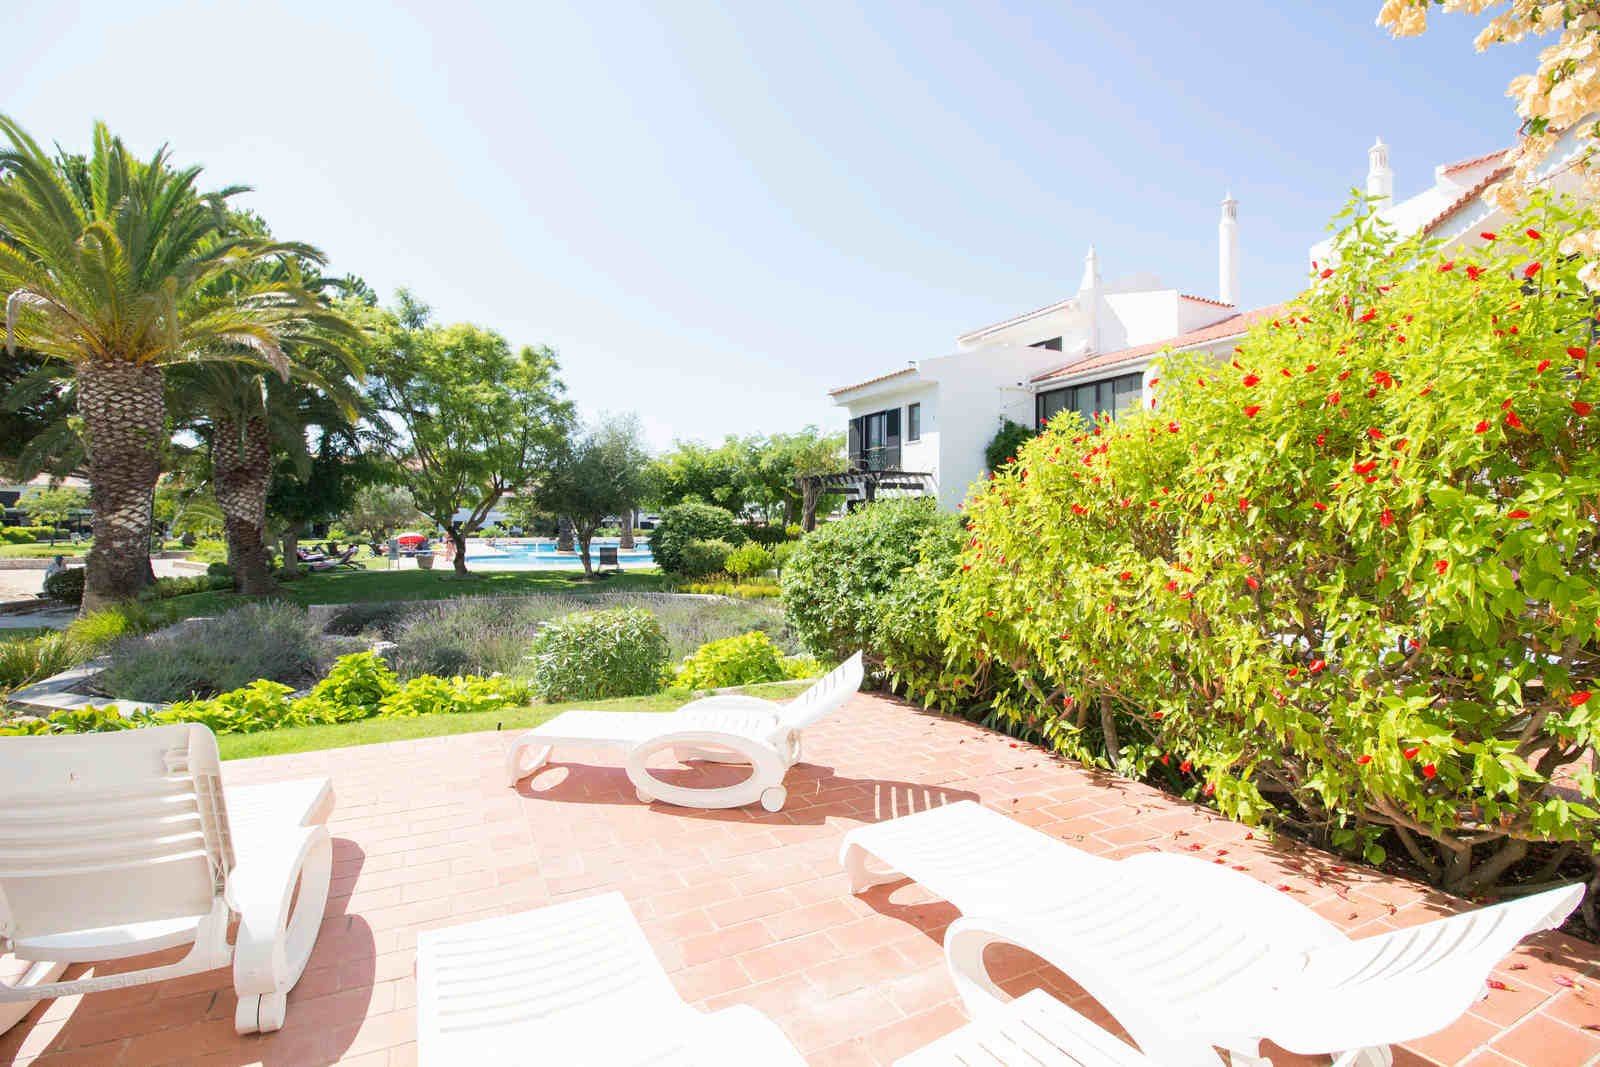 2 Bedroom Apartment Quinta Do Lago, Central Algarve Ref: PA3512